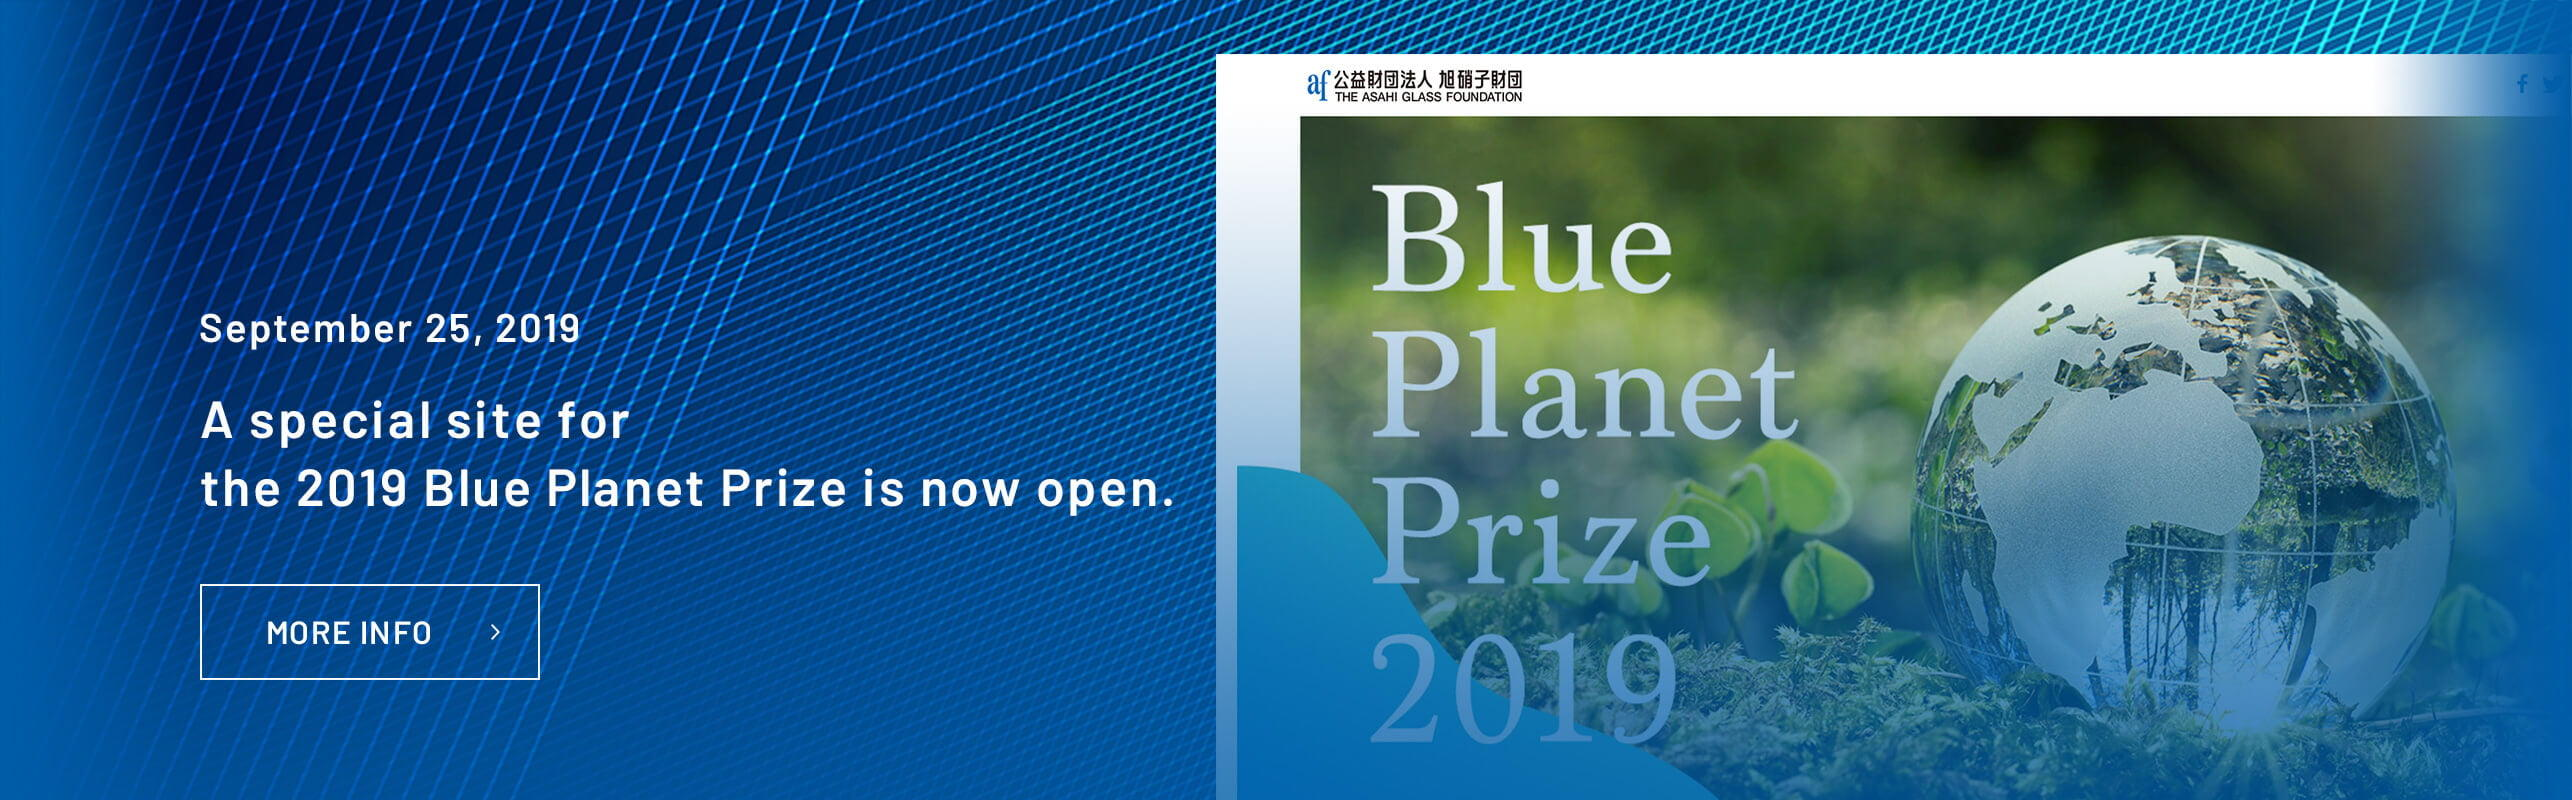 2019 Blue Planet Prize Special Site released